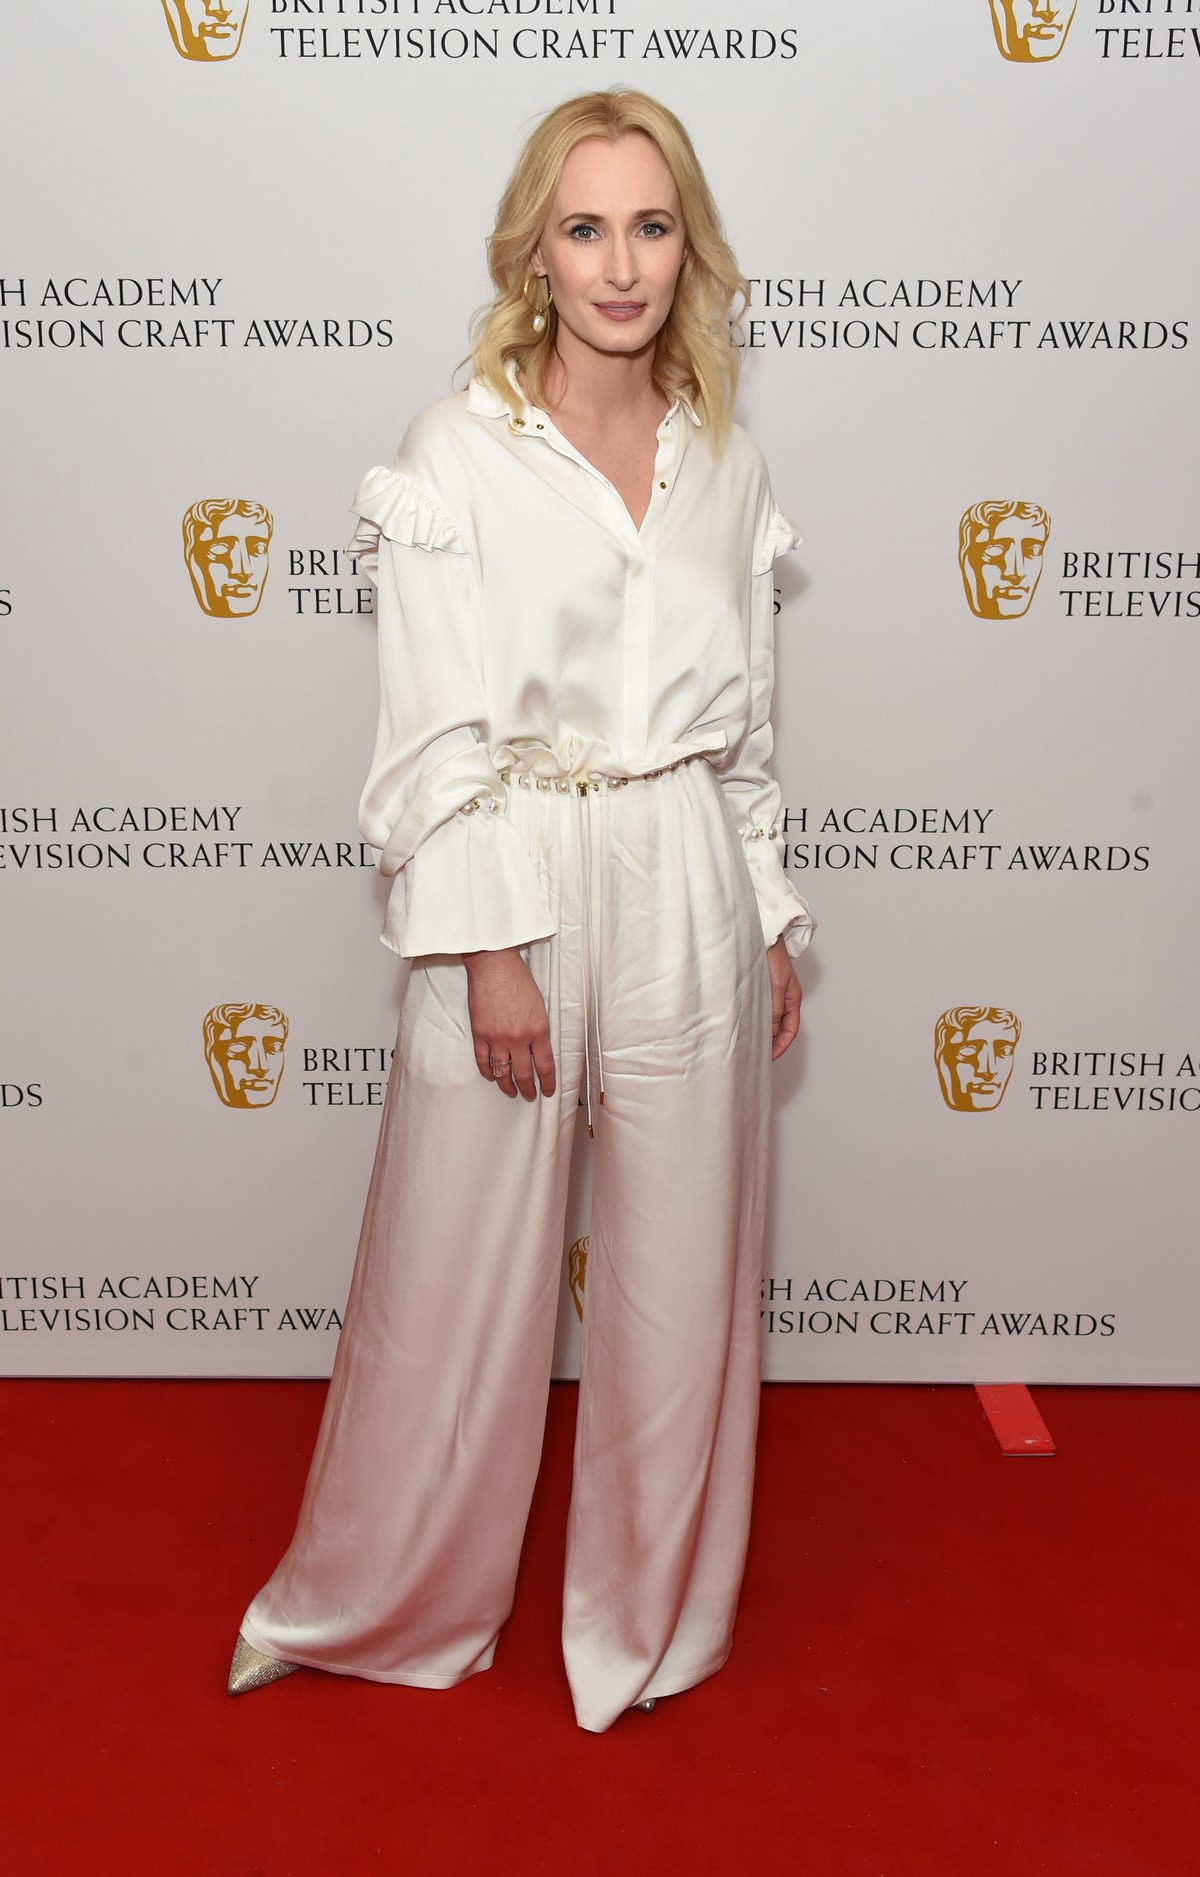 Genevieve O'Reilly at 2019 British Academy Television Craft Awards in London 2019/04/28 1